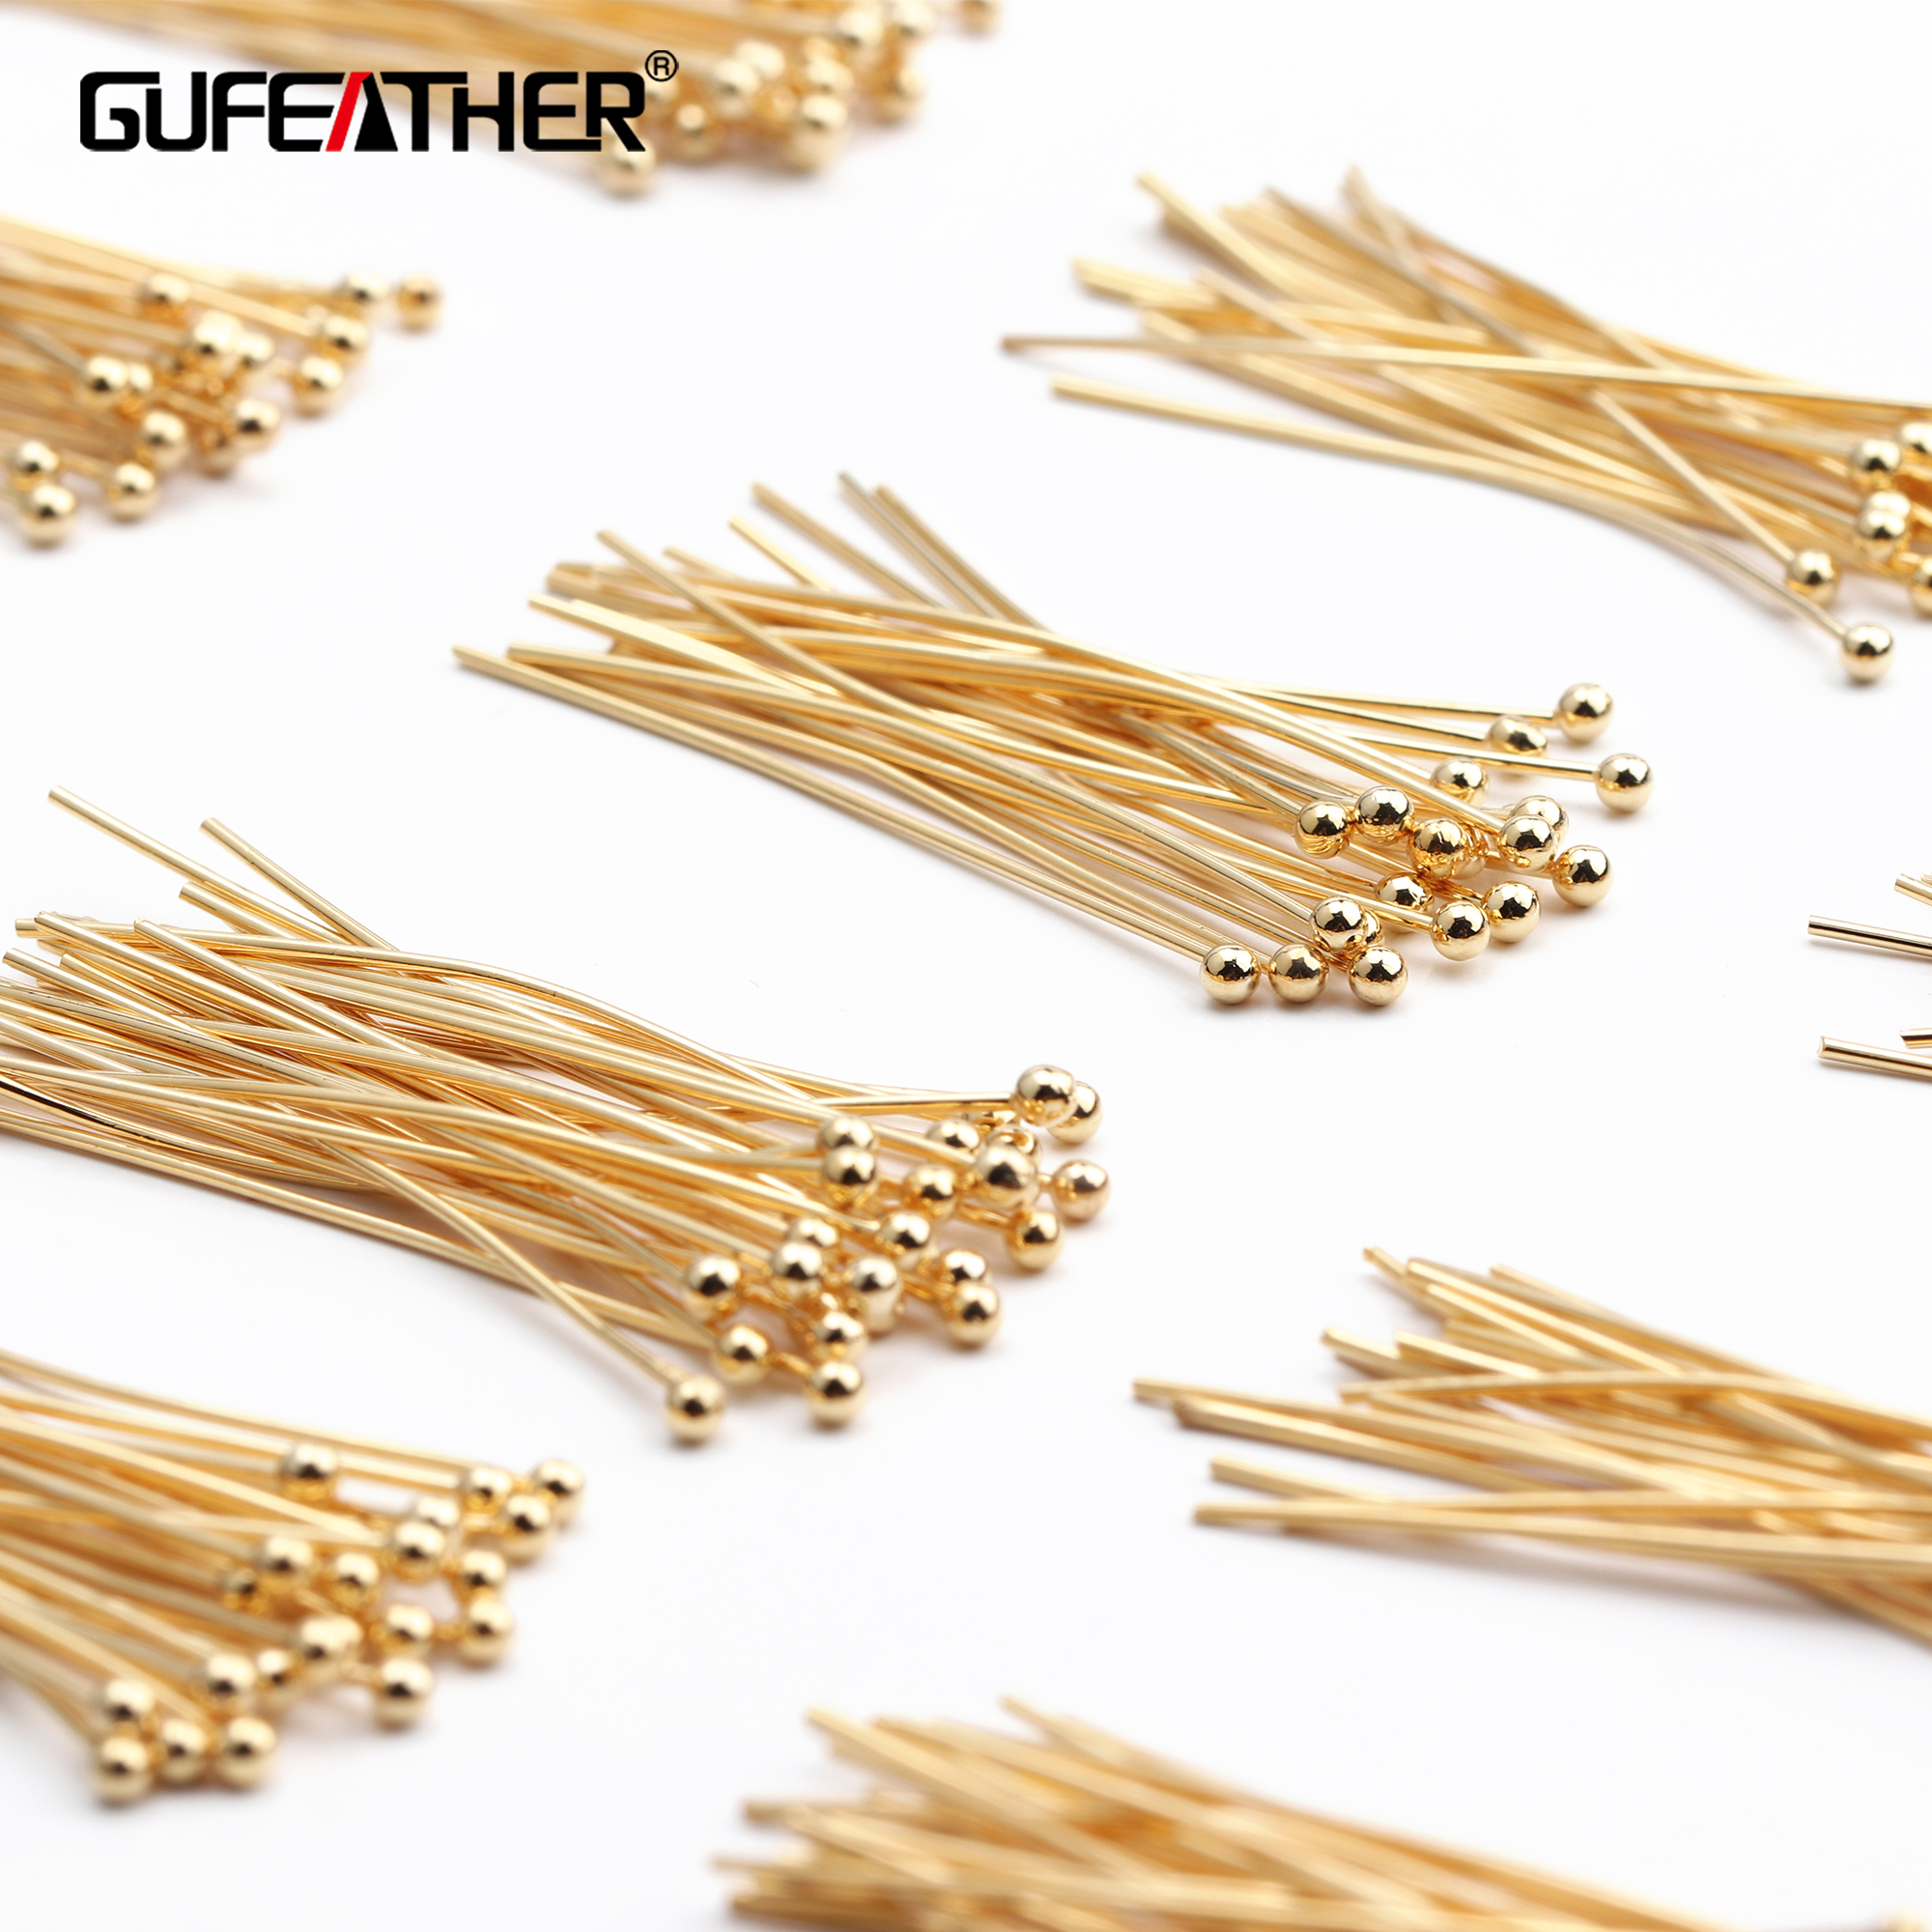 GUFEATHER M510,jewelry Accessories,18k Gold Plated,nickel Free,copper Metal,needle,diy Jewelry,hand Made,jewelry Making,25g/lot